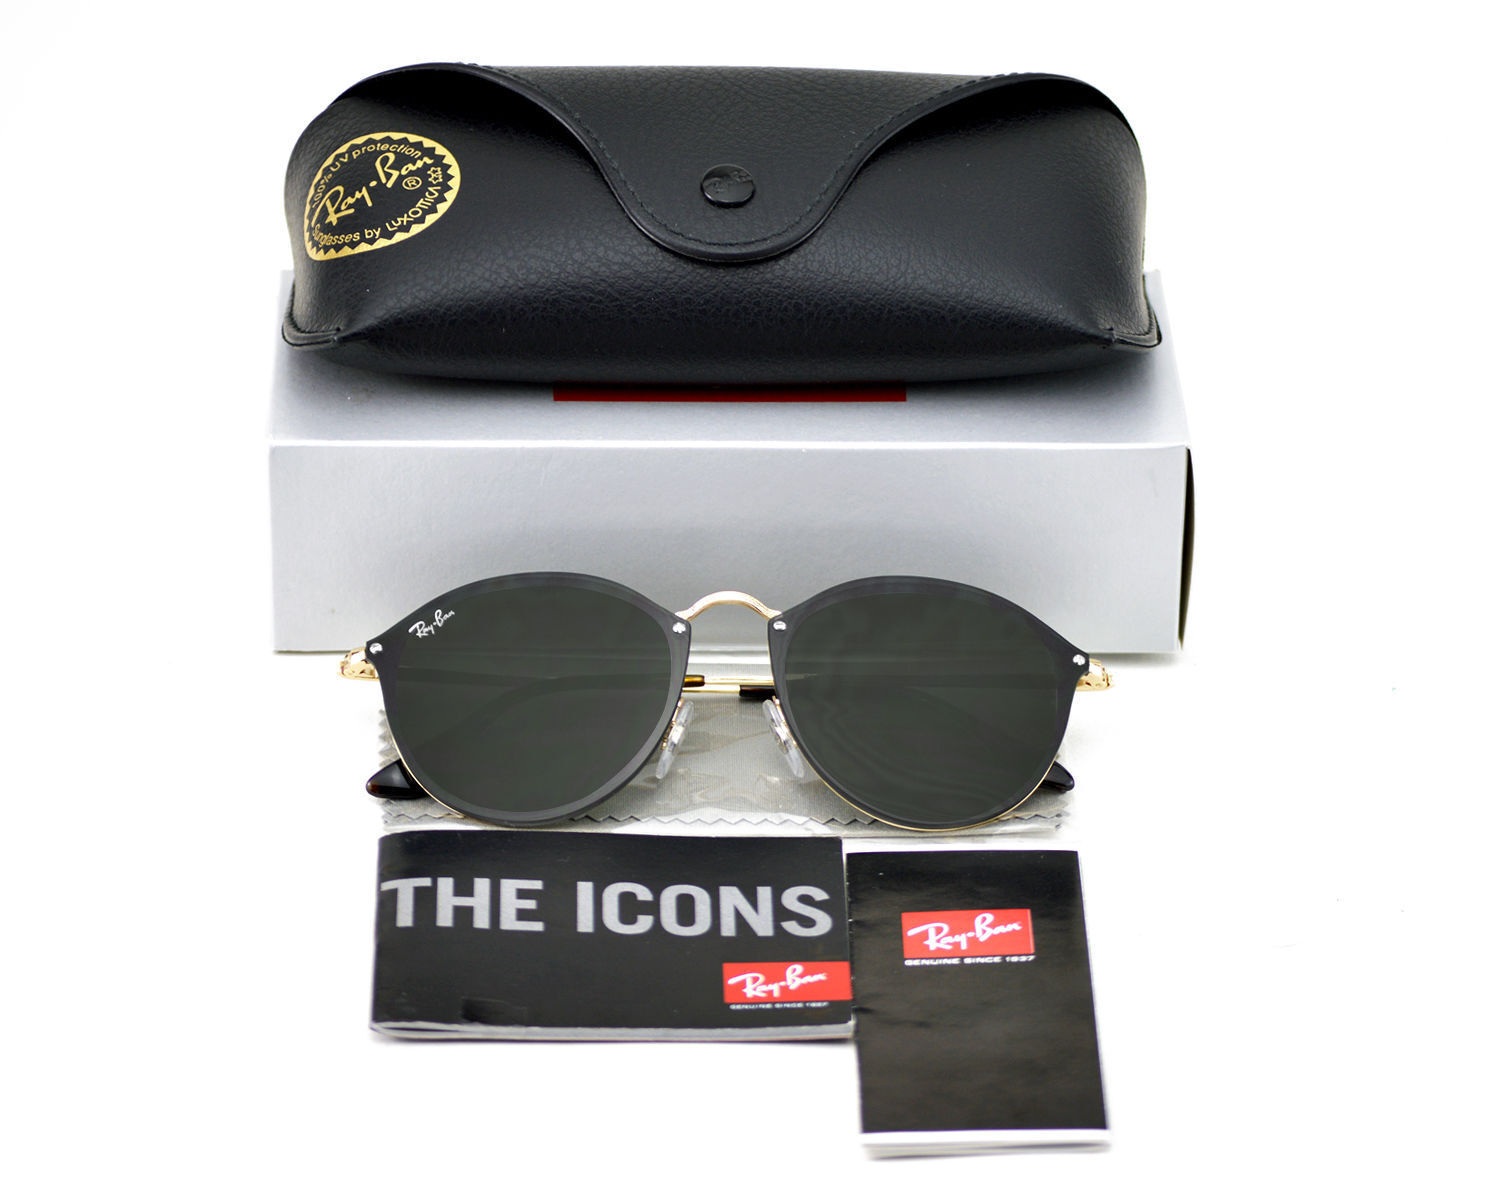 ca43ce01eff Ray-Ban Sunglasses Blaze Round Gold Green Classic Rb3574n 001 71 59 ...